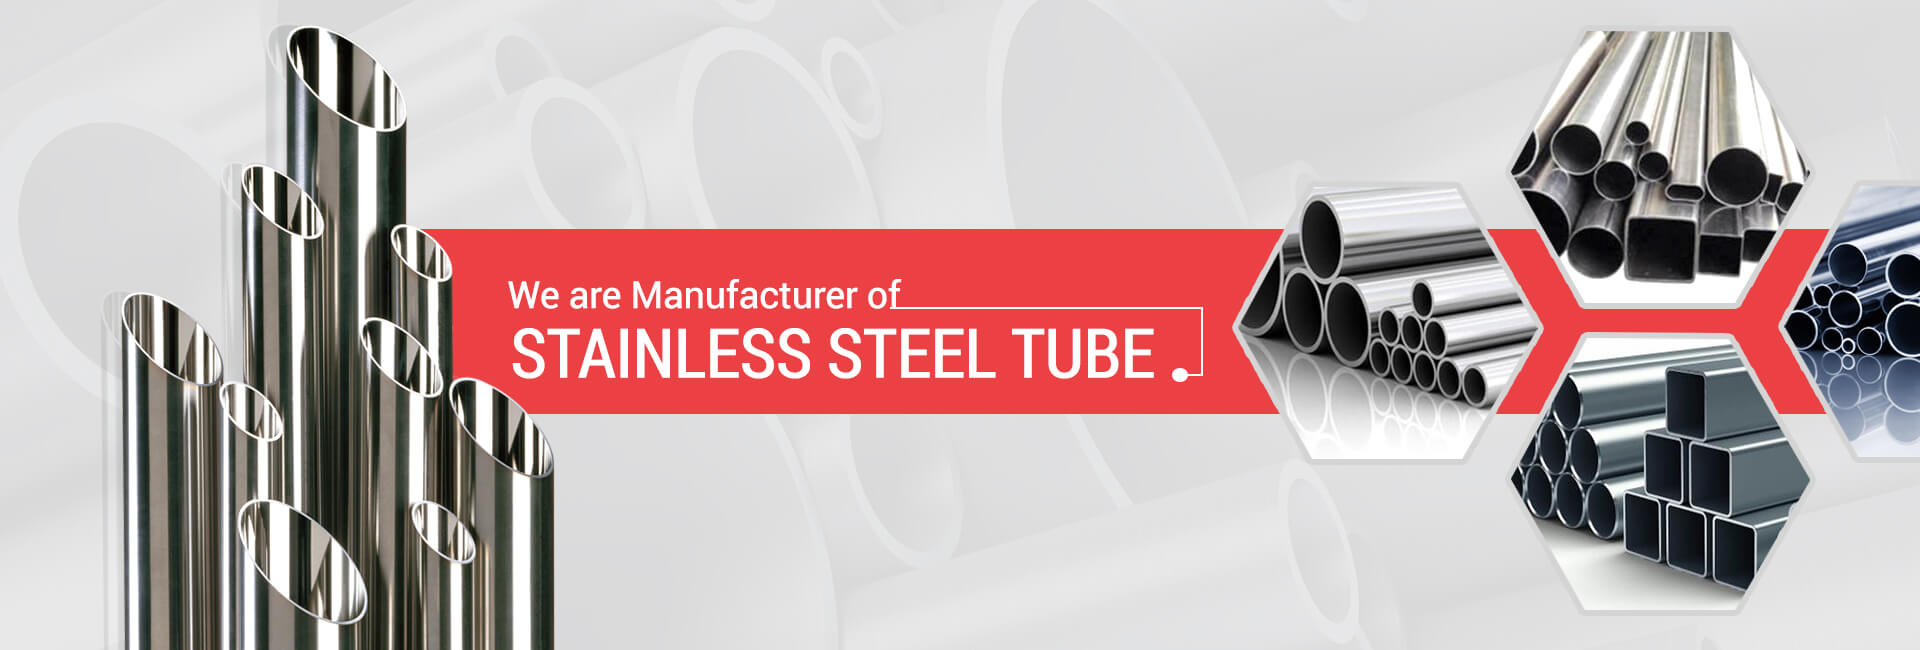 Stainless Steel Fittings, Tube, Pipe, Sheet Manufacturer, Supplier, Dealer in Ahmedabad, India